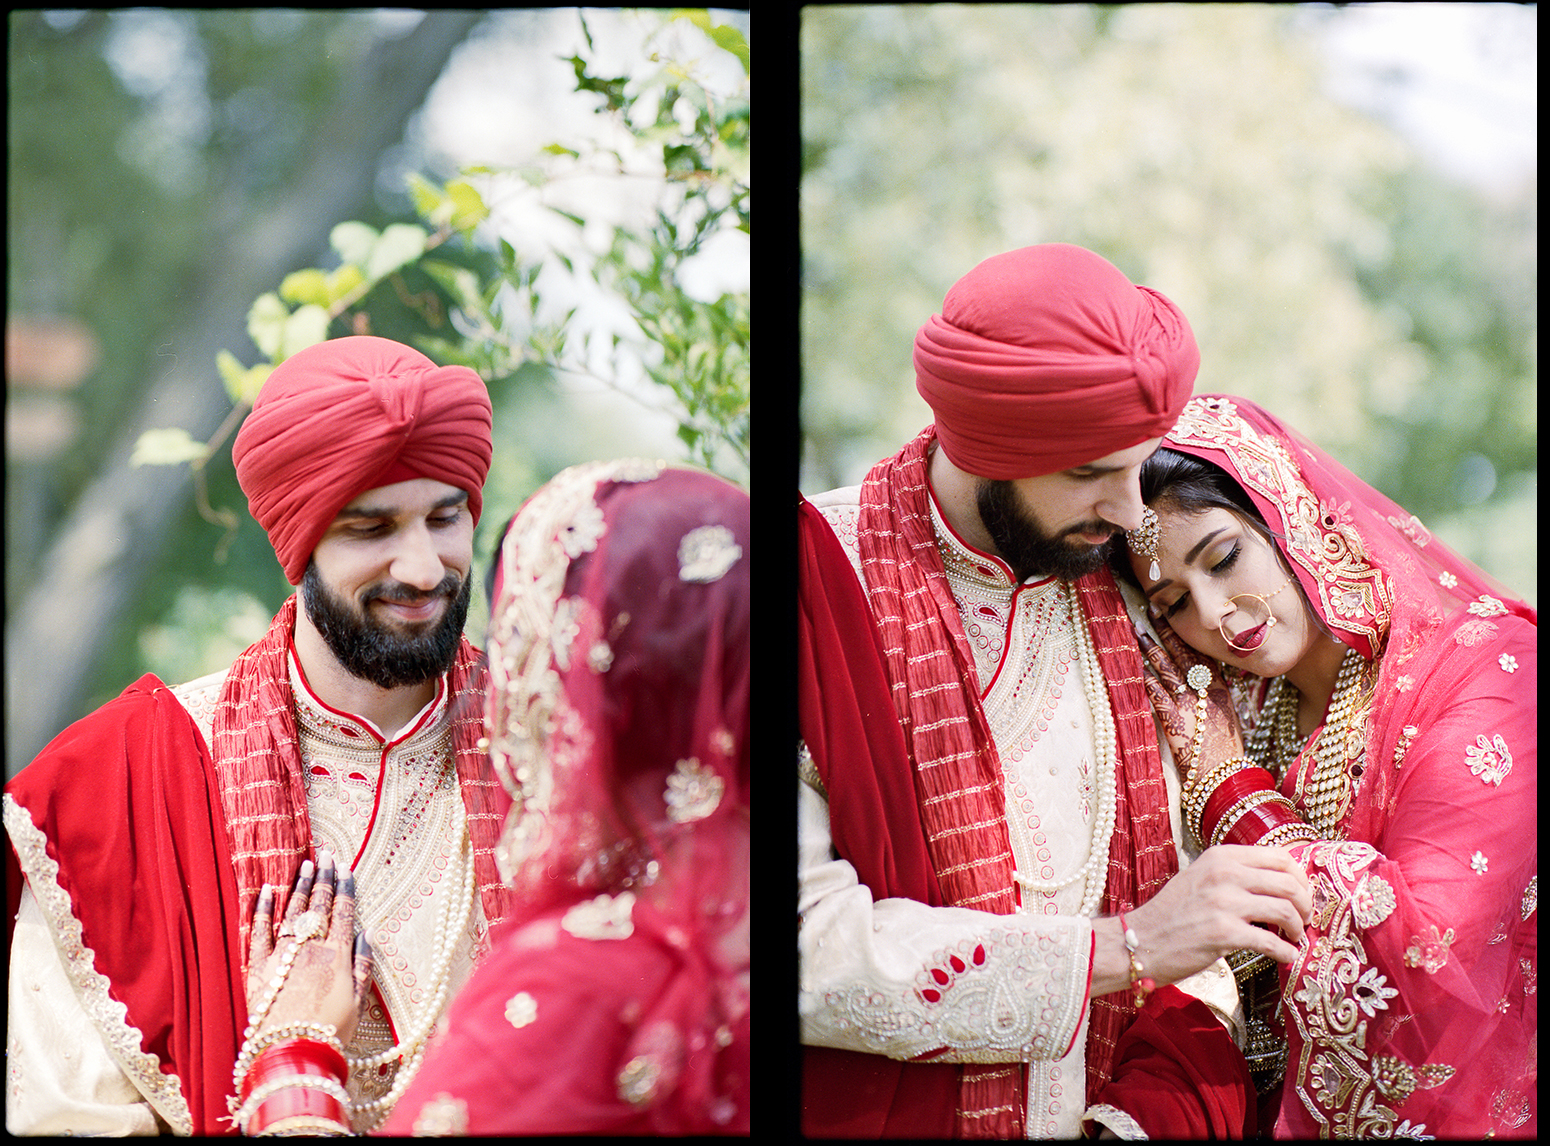 1-Best-Analog-Film-Wedding-Photographers-in-Toronto-3B-Photography-Brian-B-Bettencourt-Leica-M4P-Kodak-Film-Portra-400-BRide-getting-ready-sunrise-light-on-traditional-indian-Sikh-Wedding-bride-and-groom-candid-portrait-bride-quiet-moment.jpg